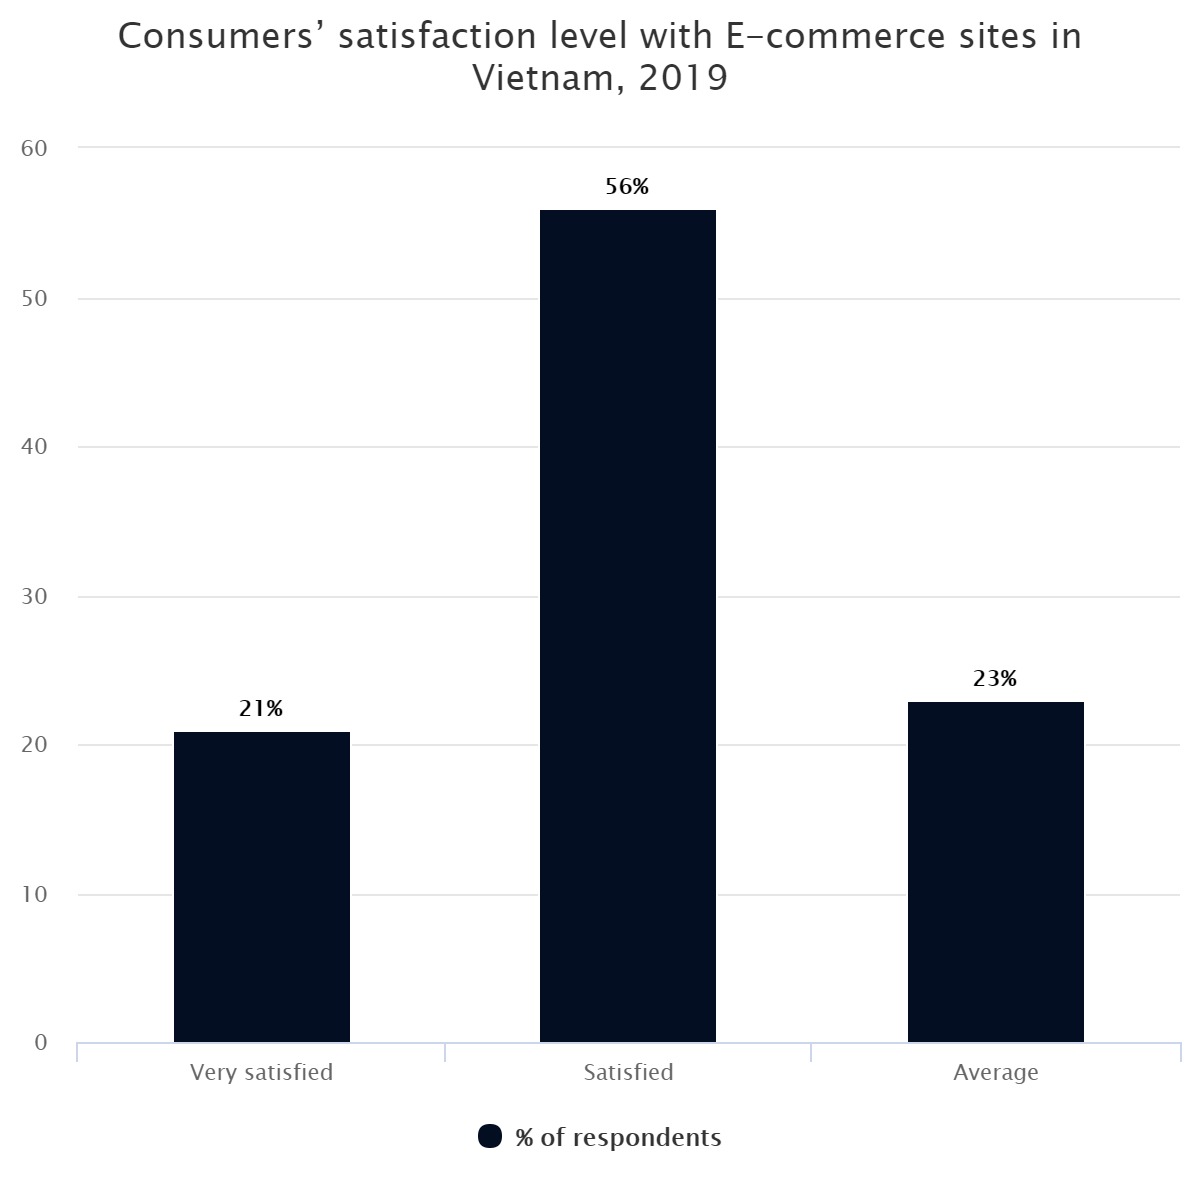 Consumers' satisfaction level with E-commerce sites in Vietnam, 2019